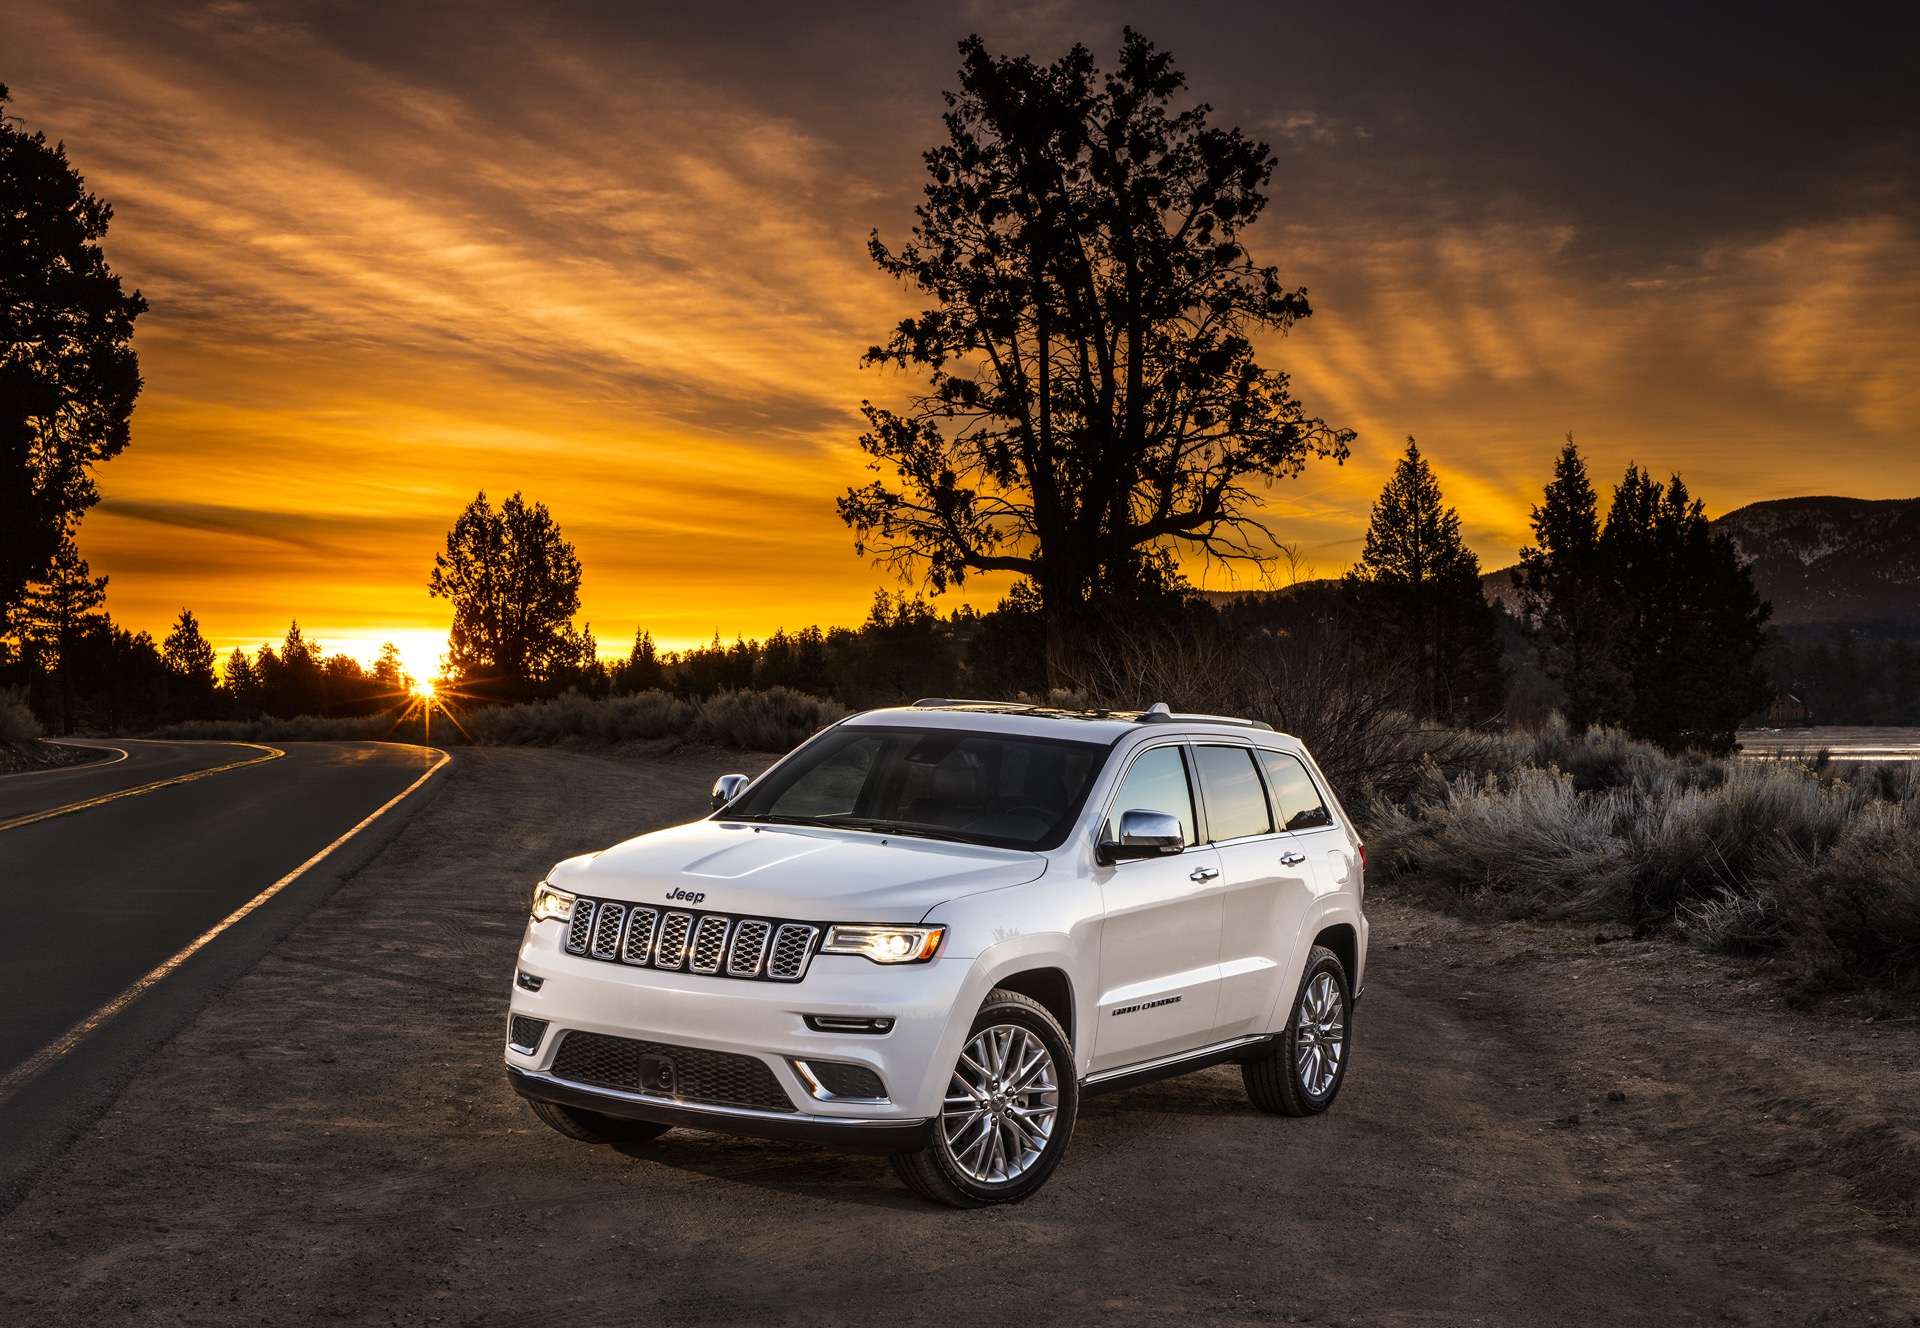 Marchionne confirms body-on frame platform for Jeep Wagoneers, hints at Alfa platform for next Grand Cherokee